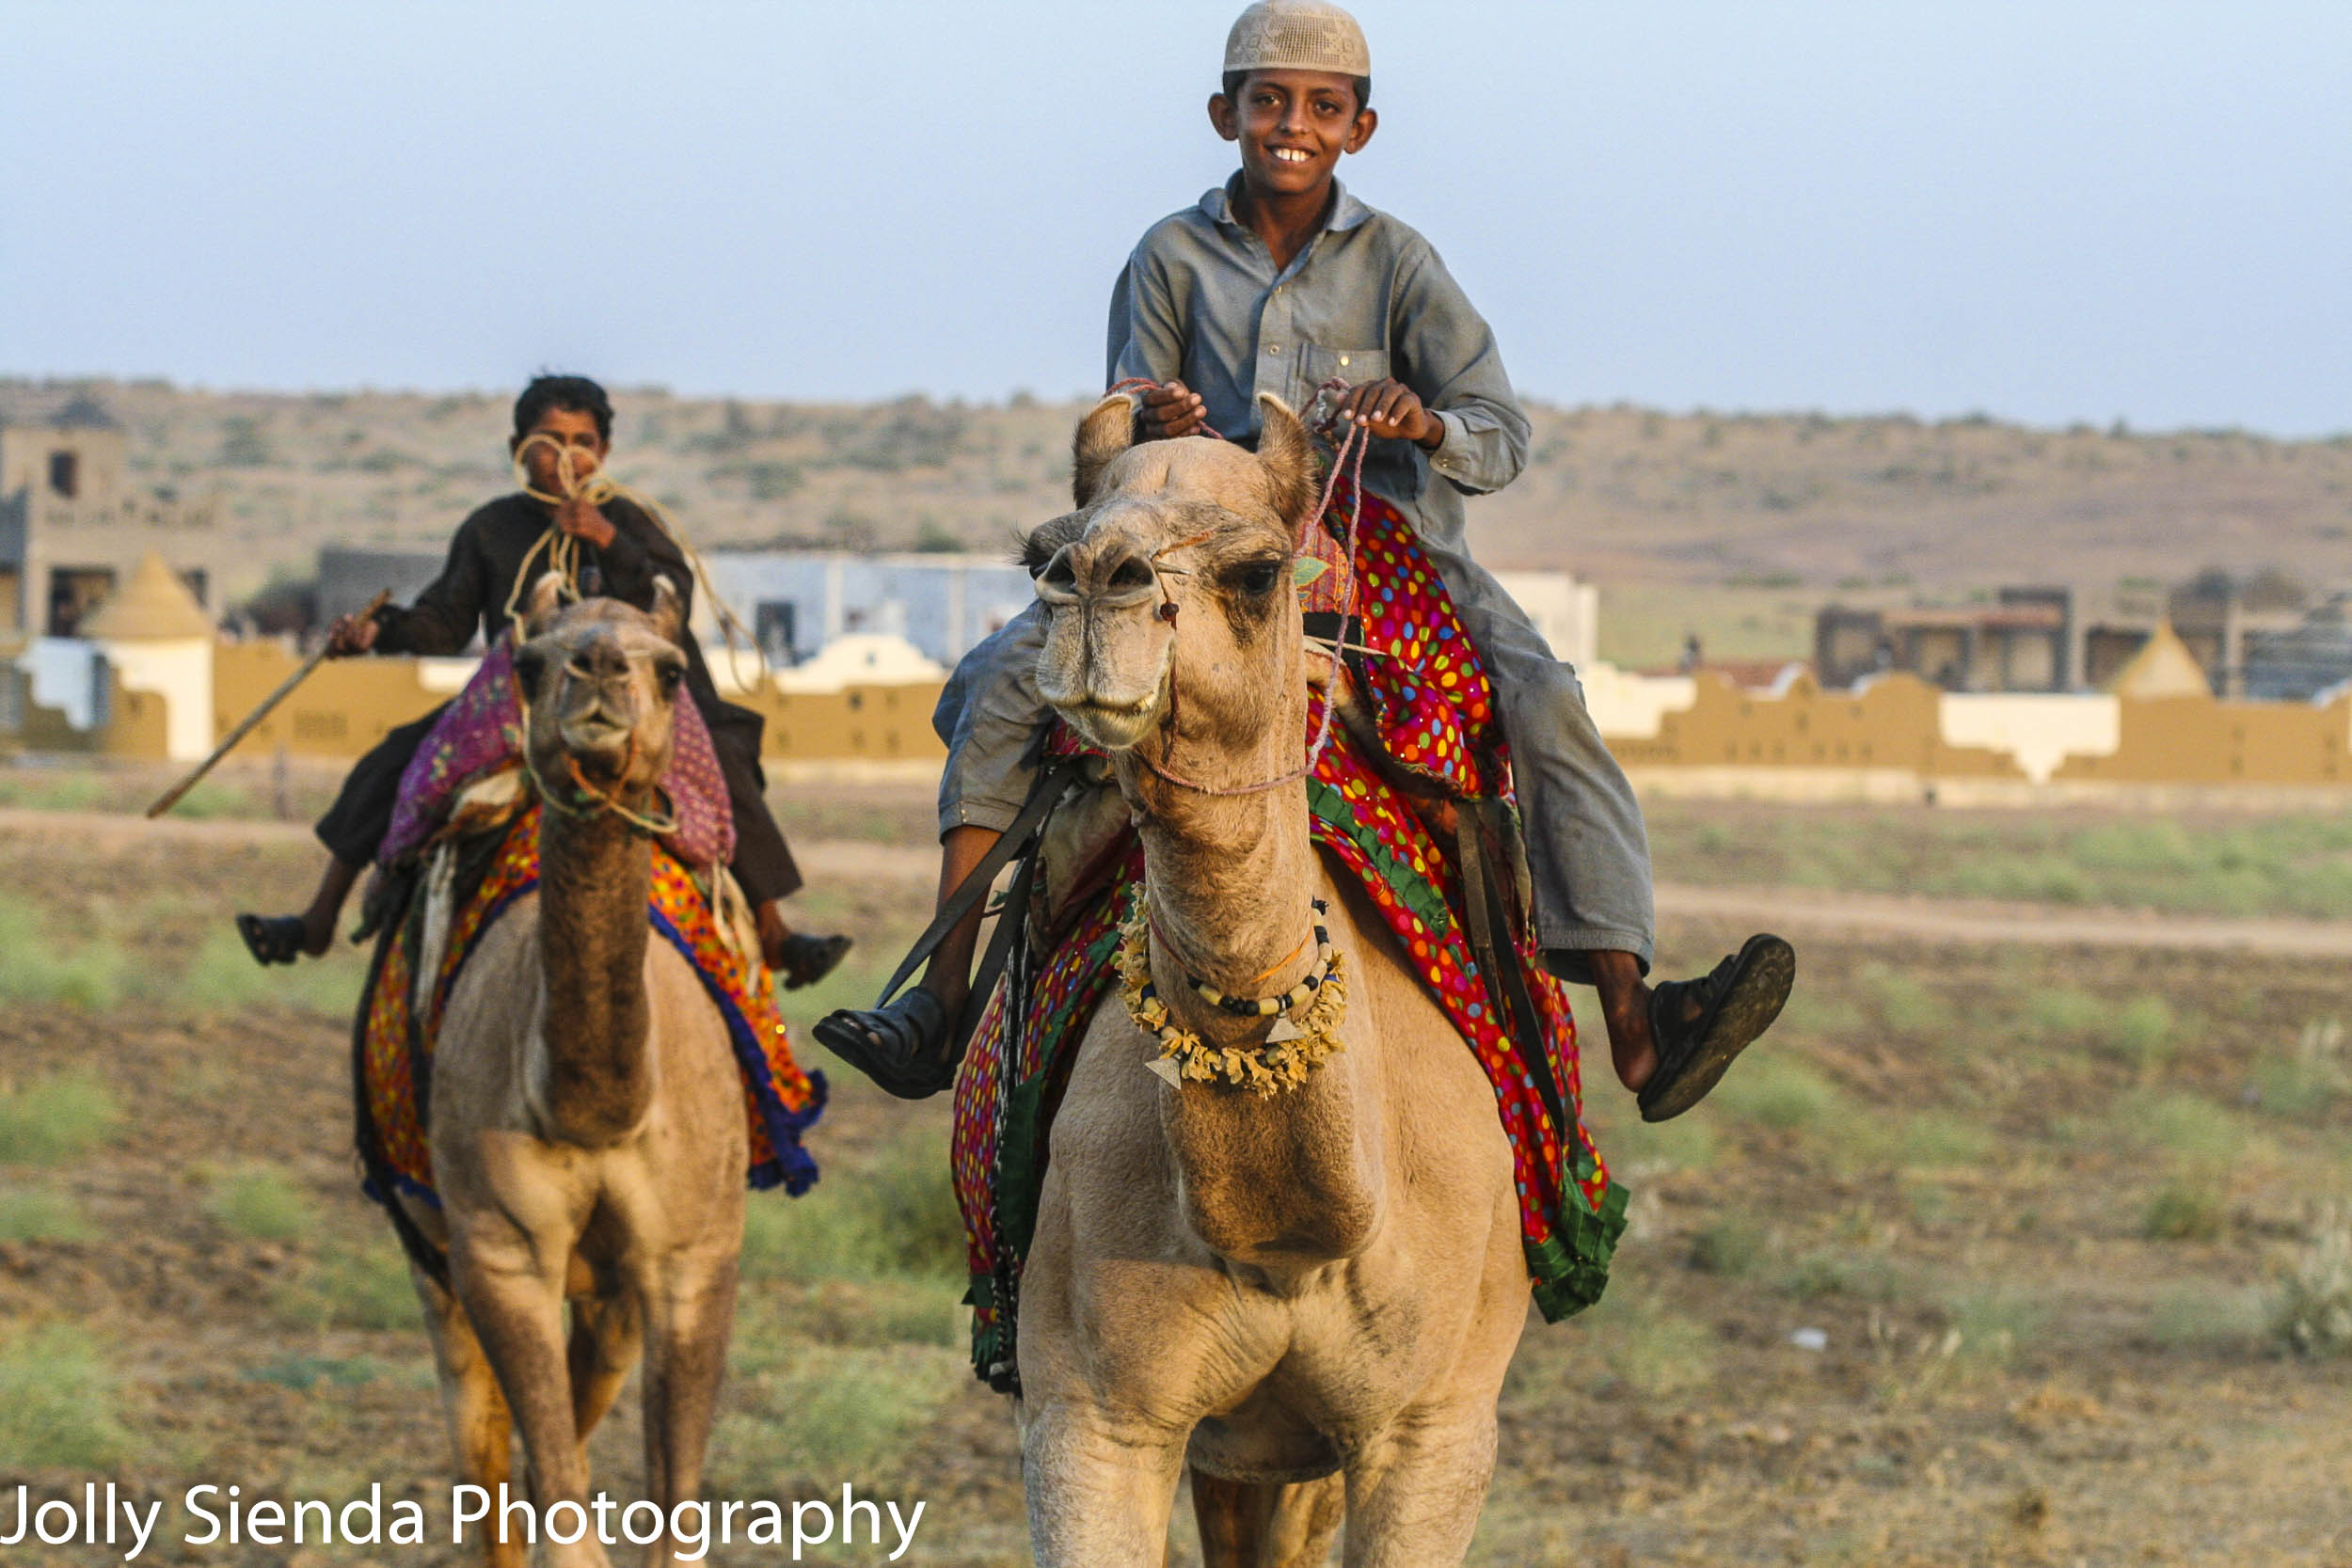 Bedouin, banjaras boys gallup smiling on decorated camels in the